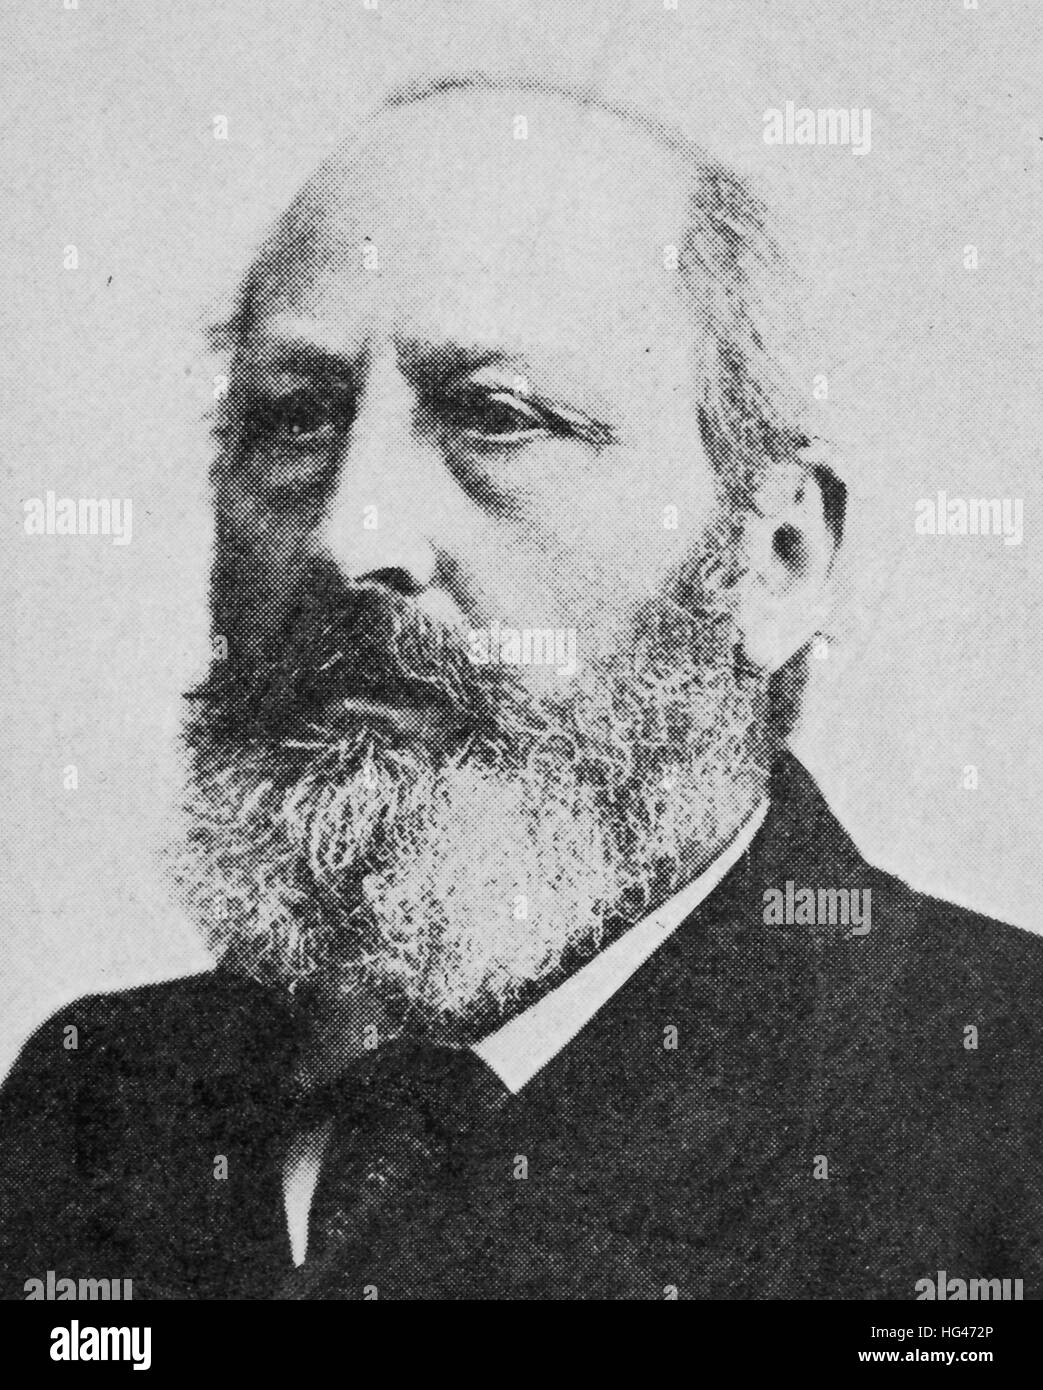 Eduard Suess, August 20, 1831 - April 26, 1914, was an Austrian geologist who was an expert on the geography of - Stock Image